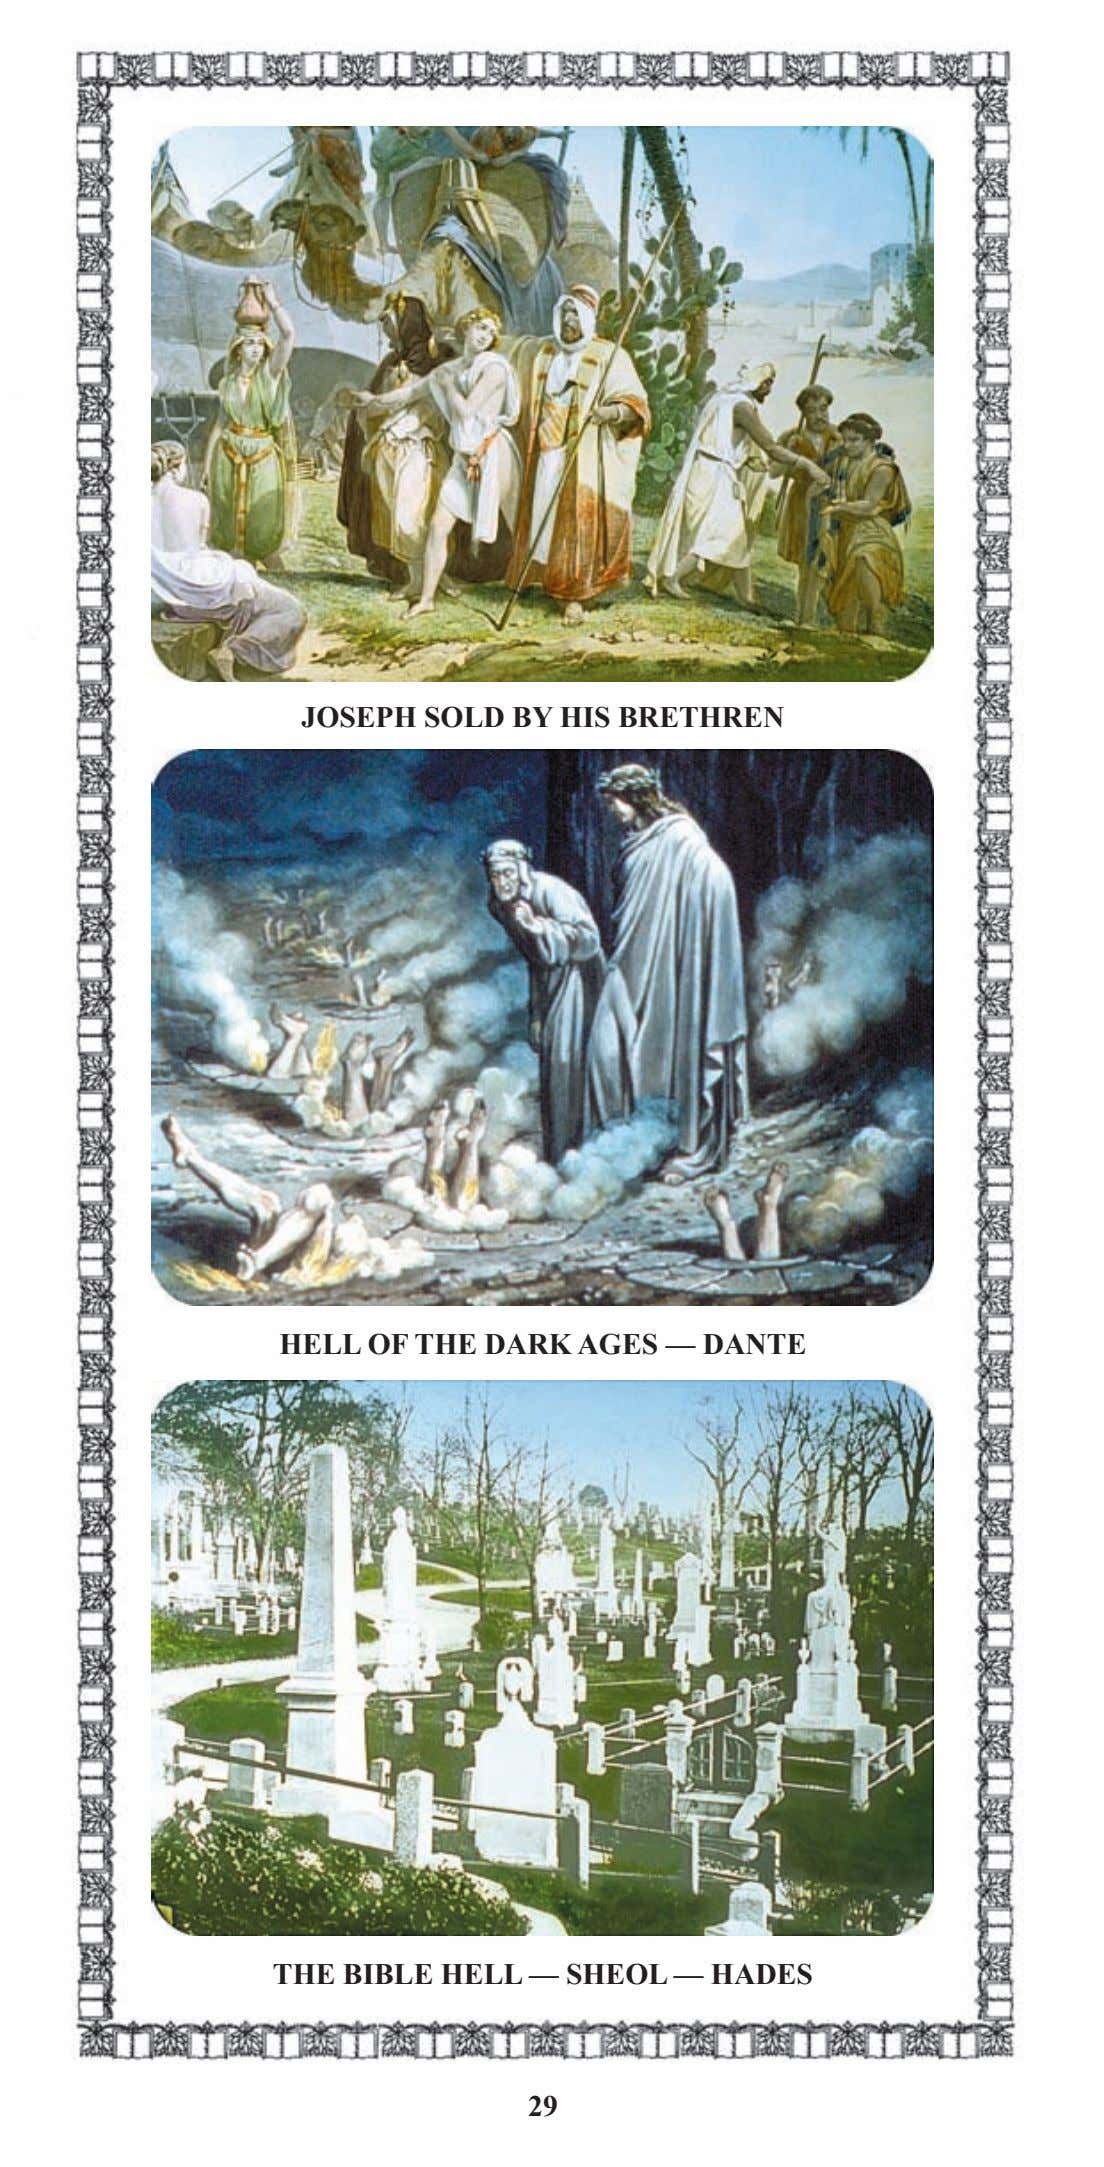 JOSEPH SOLD BY HIS BRETHREN HELL OF THE DARK AGES — DANTE THE BIBLE HELL